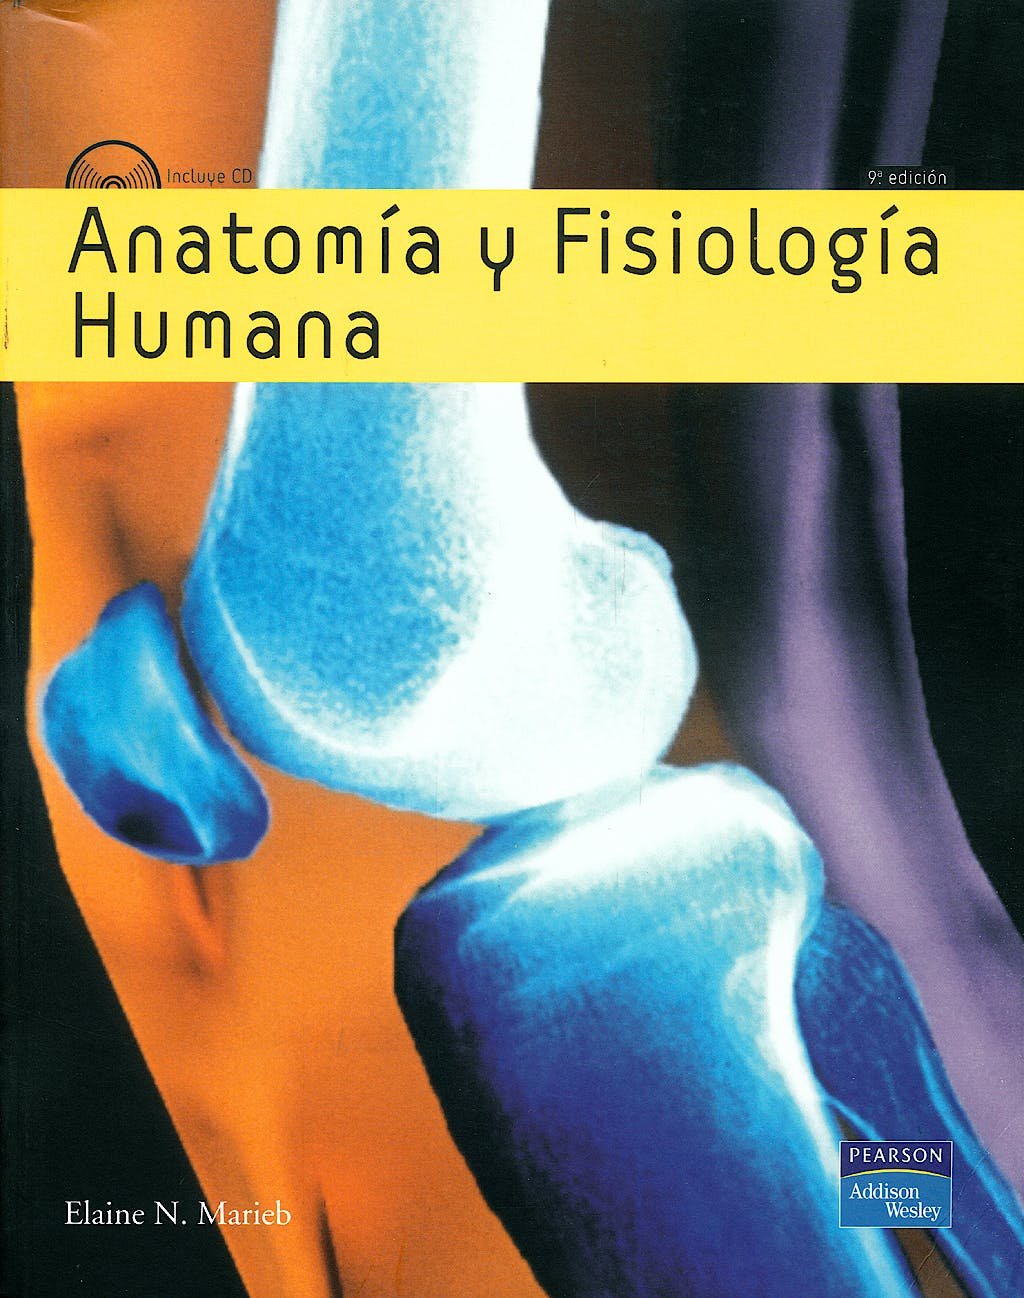 Producto: Anatomia y Fisiologia Humana + Cd-Rom en Ingles ...